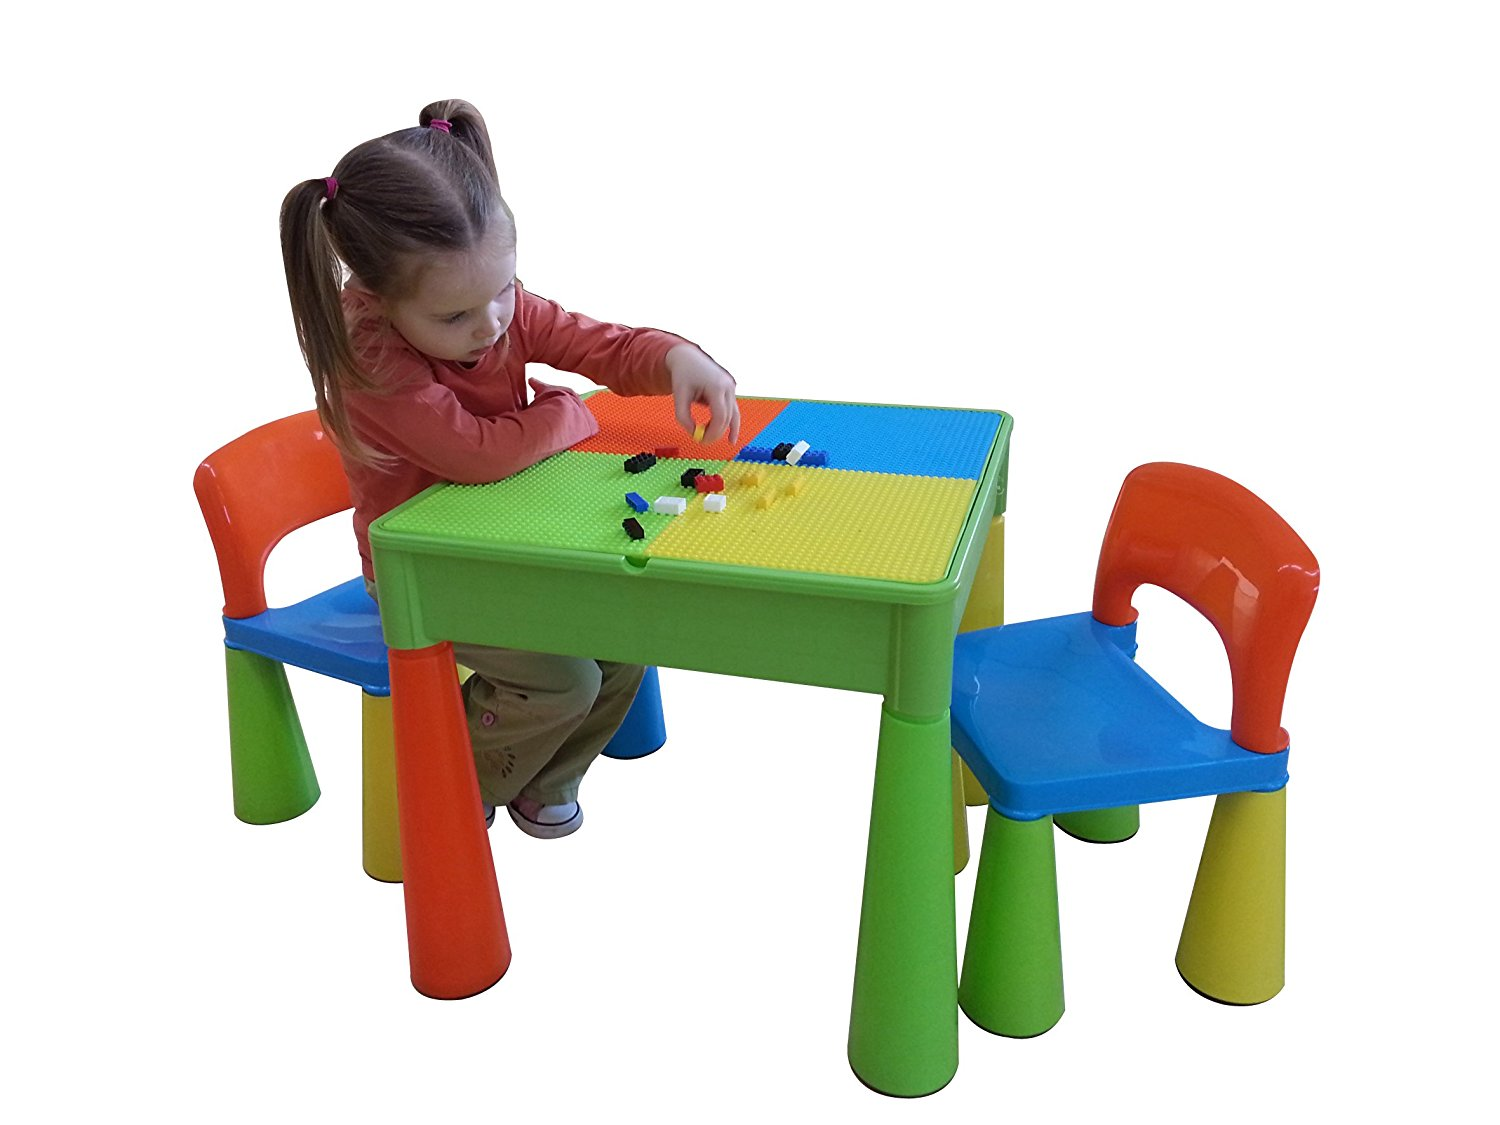 Childrens Activity Table Plum Kids Wooden Train Set And